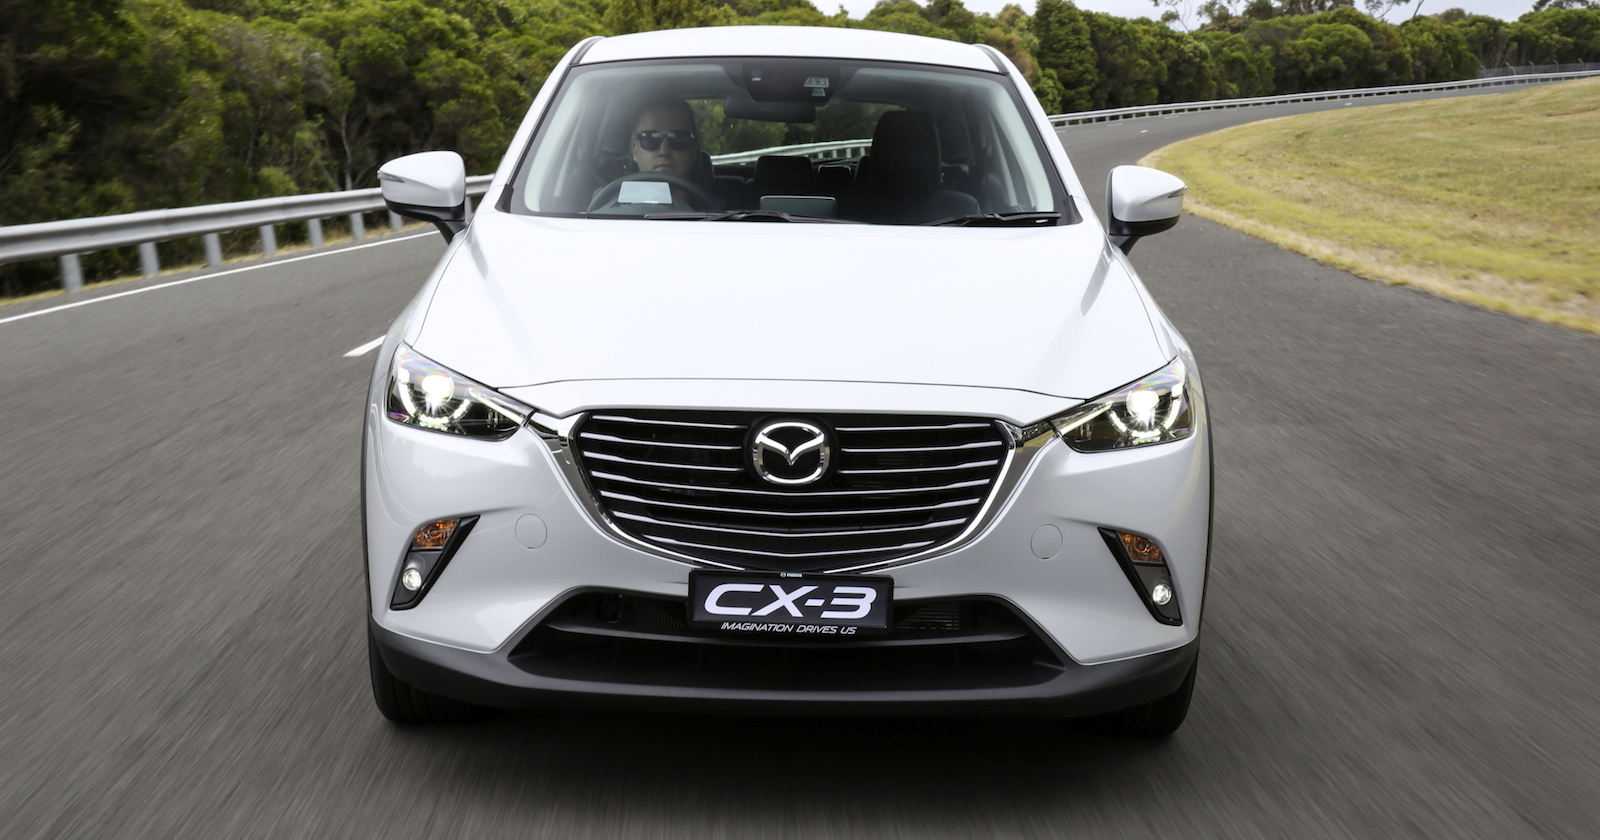 mazda cx 3 preliminary pricing and specifications leaked photos caradvice. Black Bedroom Furniture Sets. Home Design Ideas